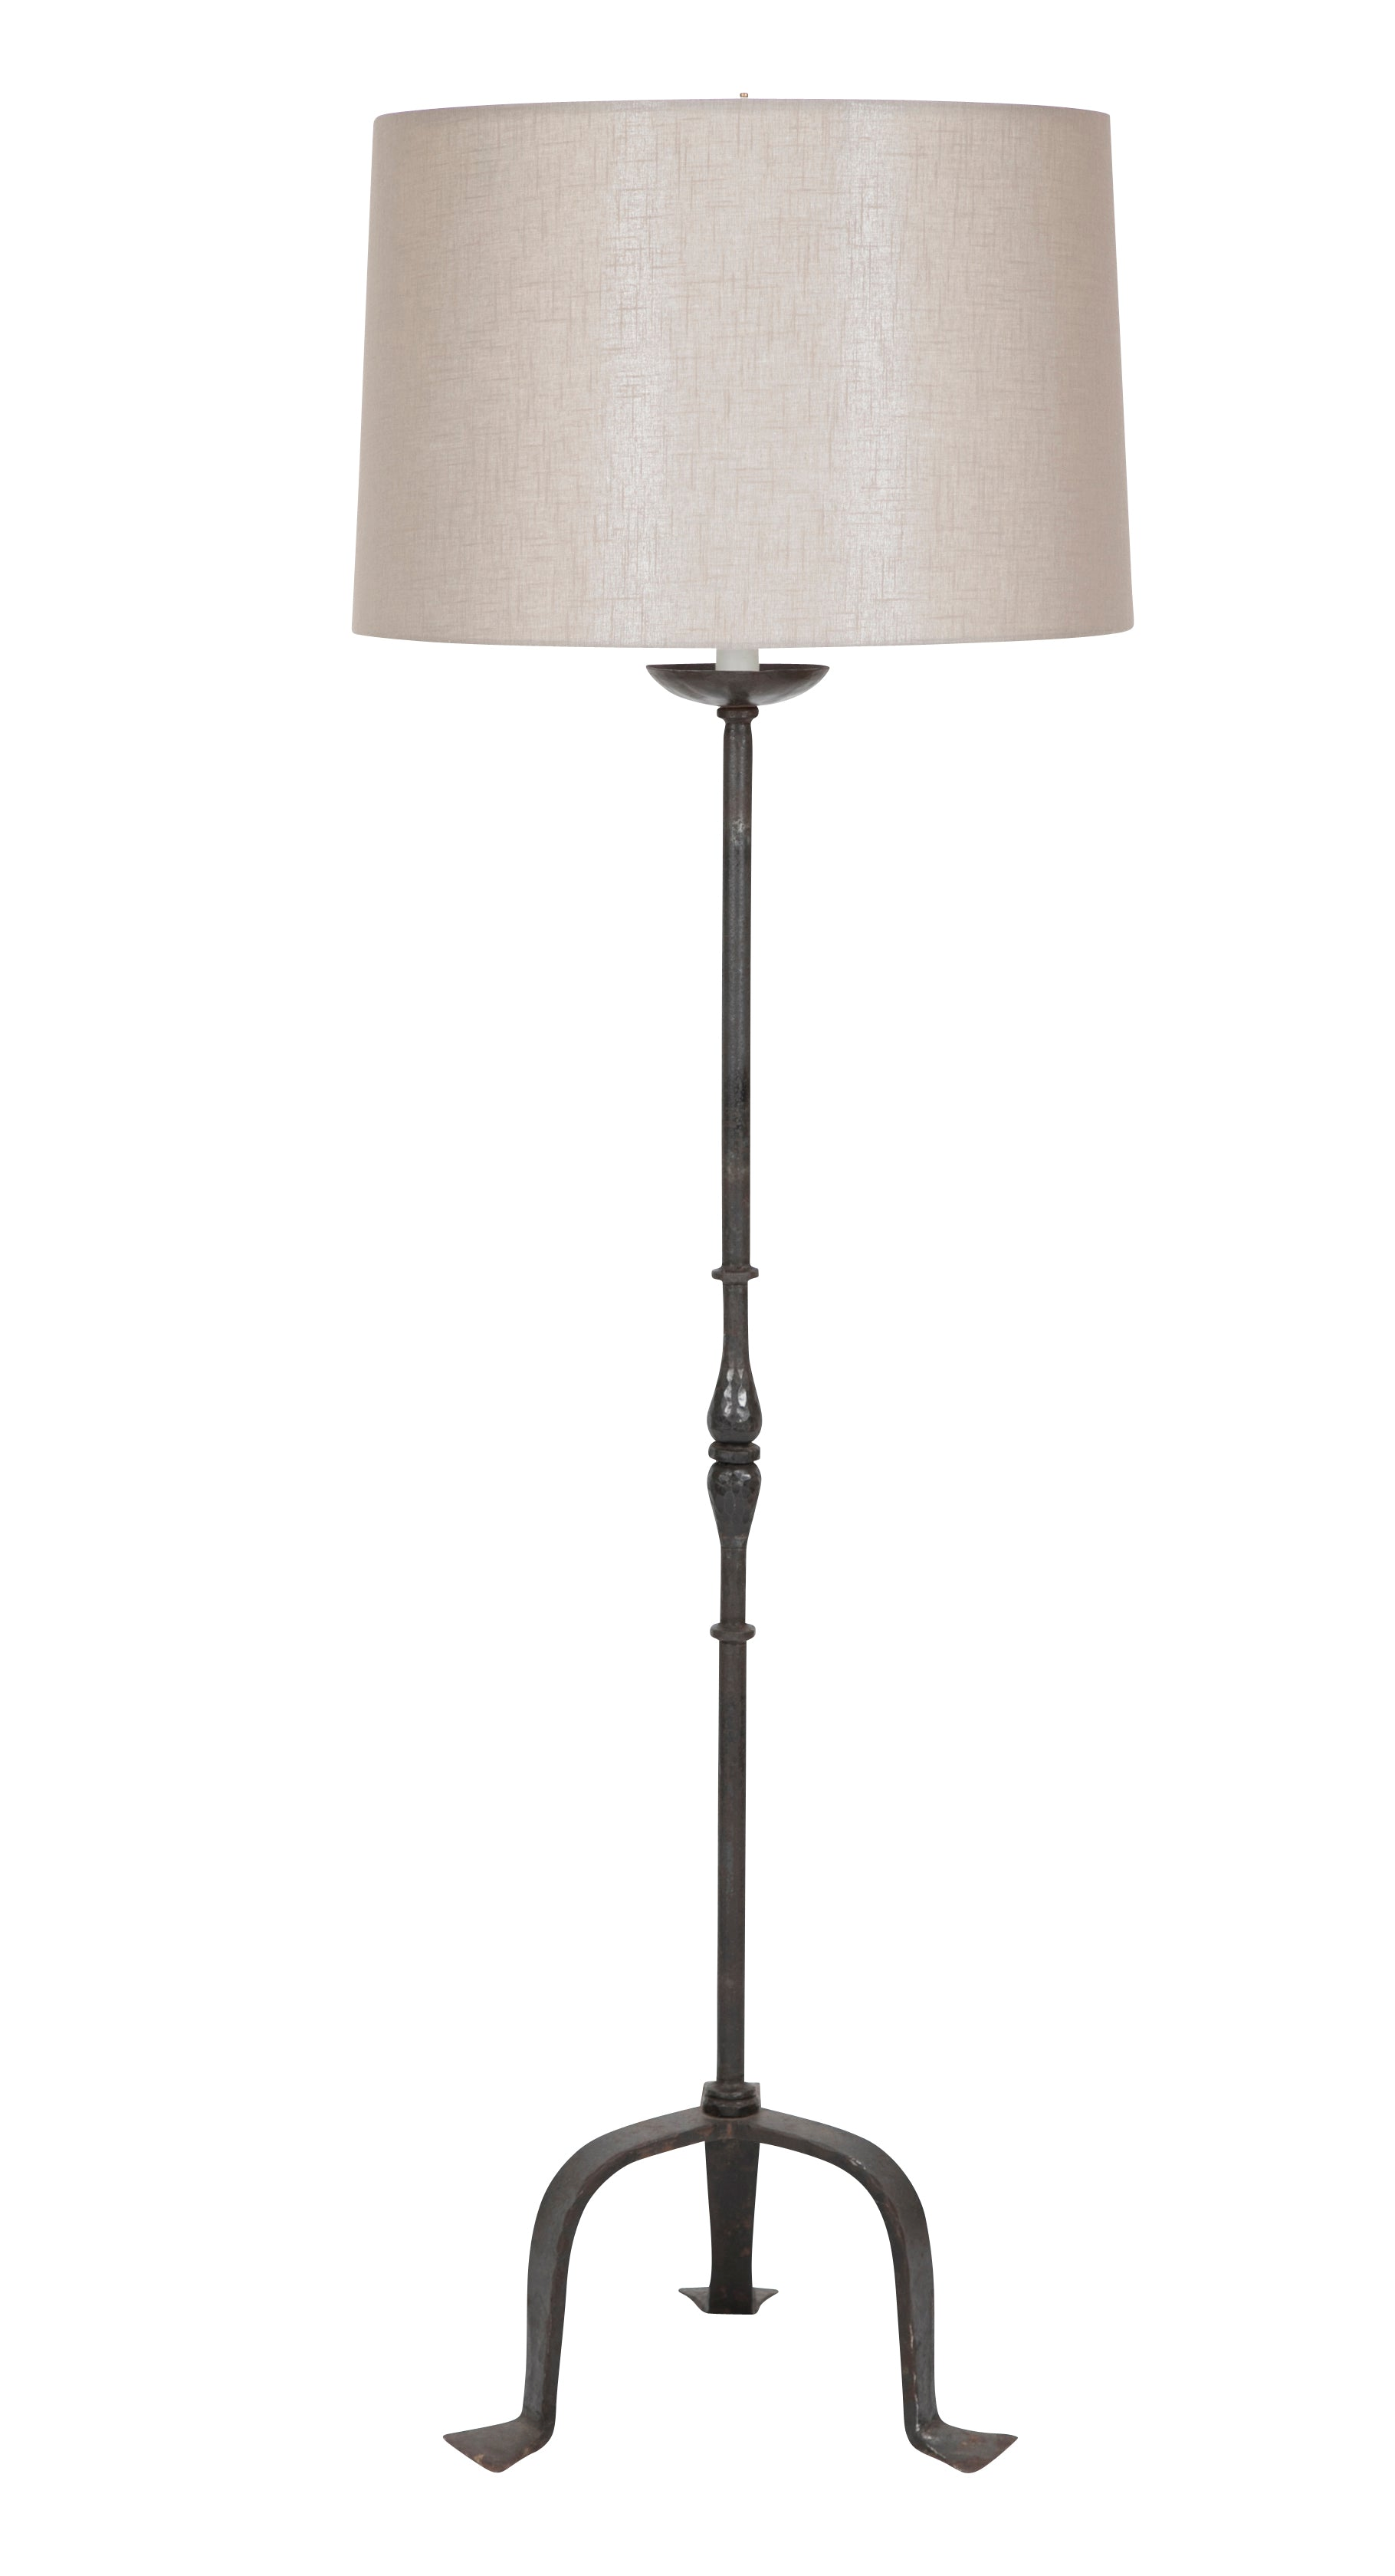 French Iron Standing Lamp